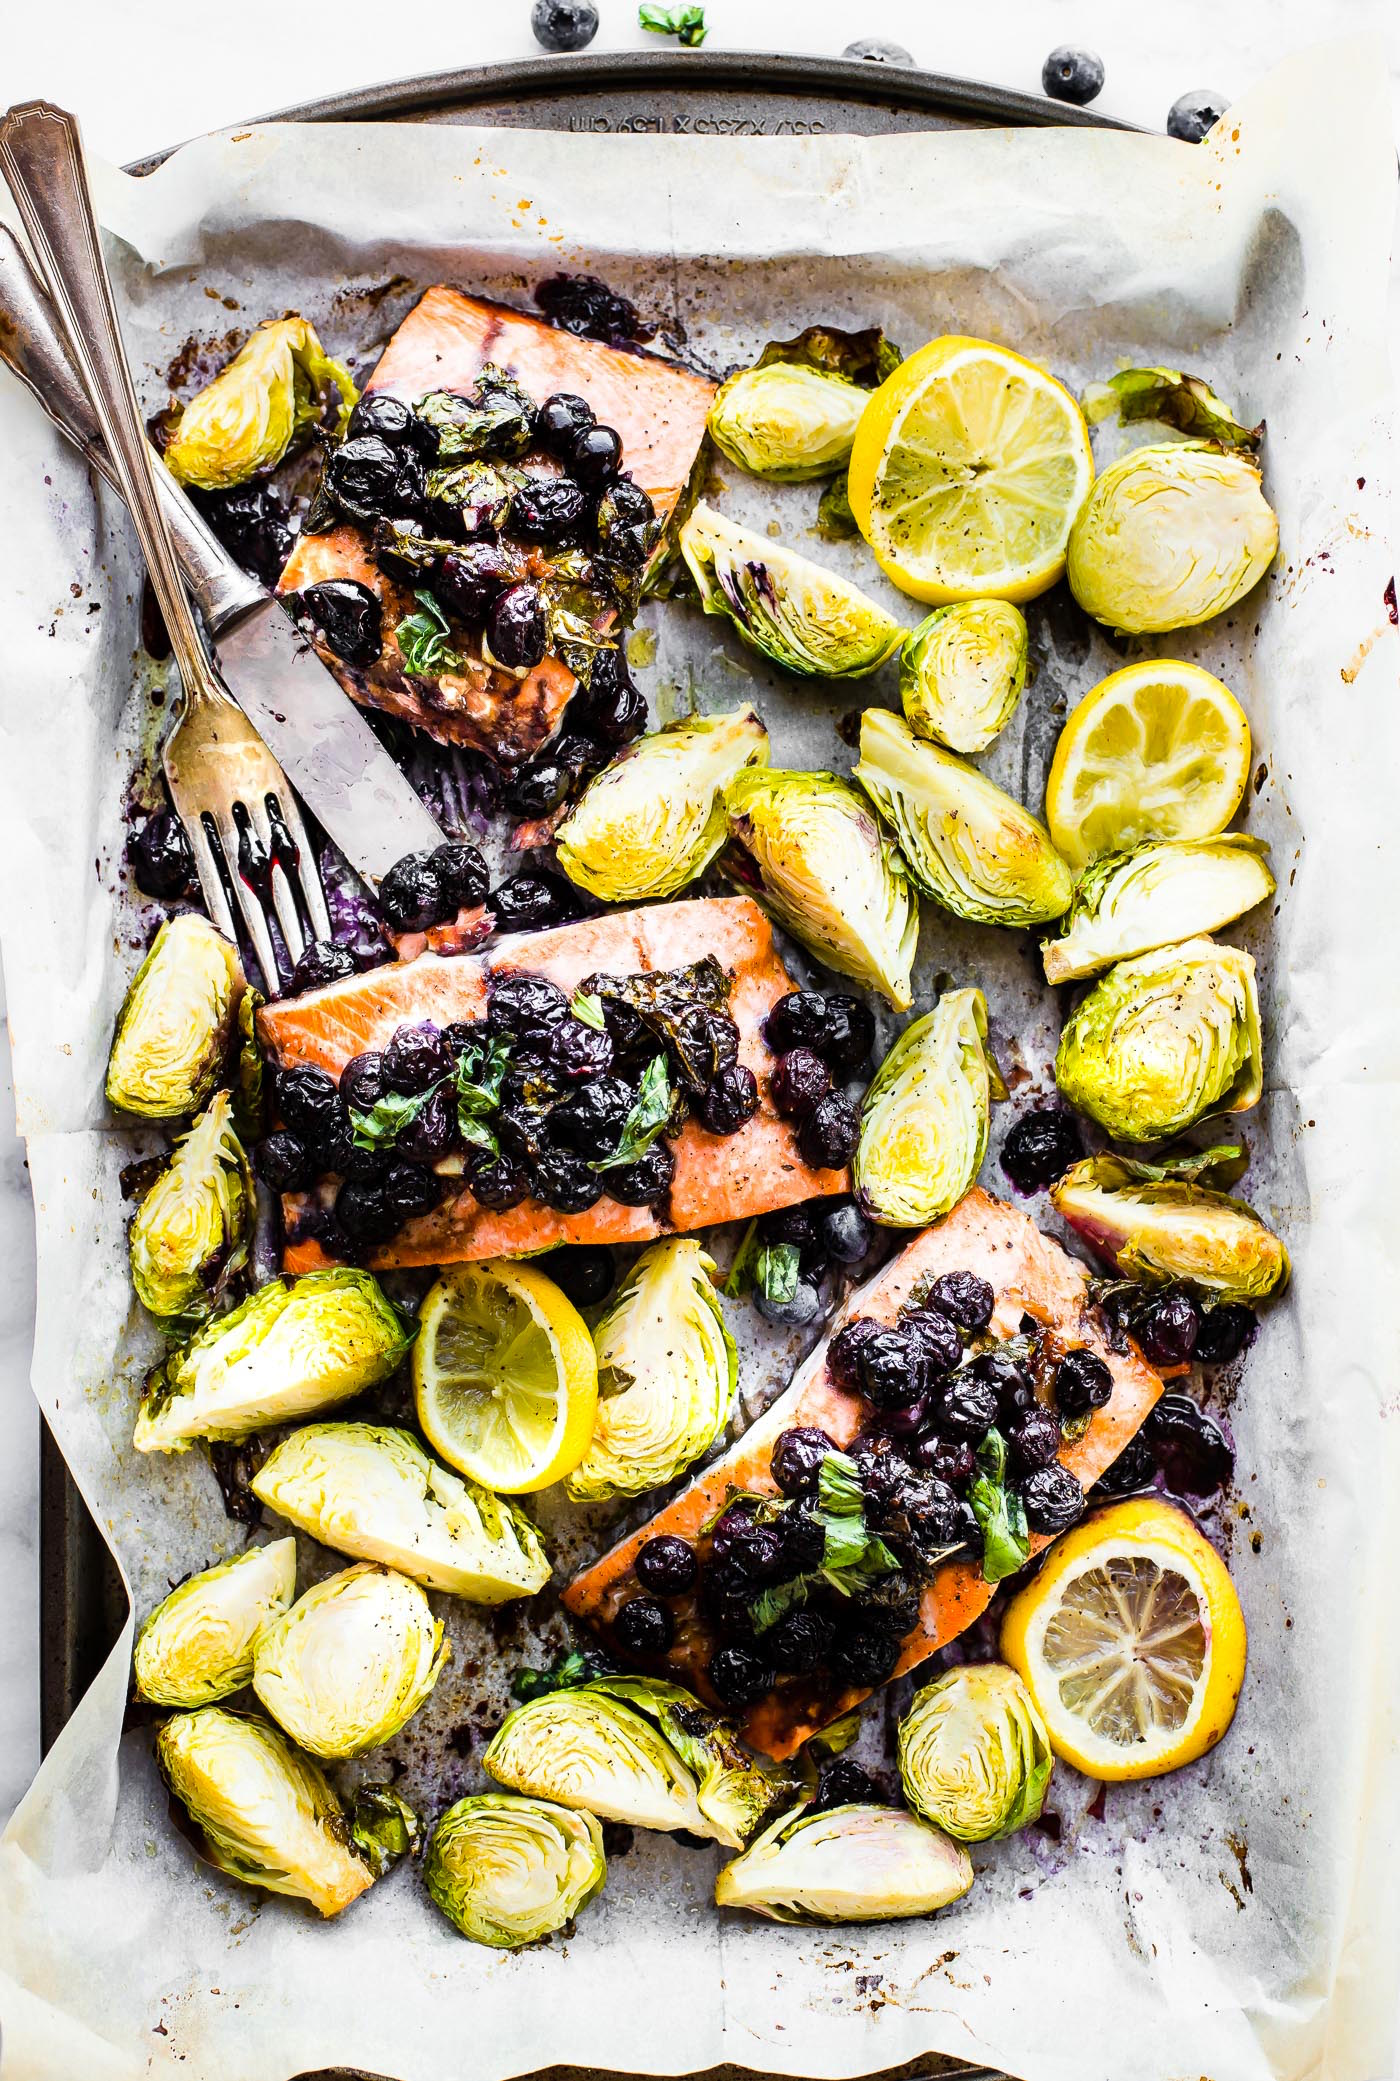 Superfood Baked Salmon Paleo One Pan Meal Recipe Video